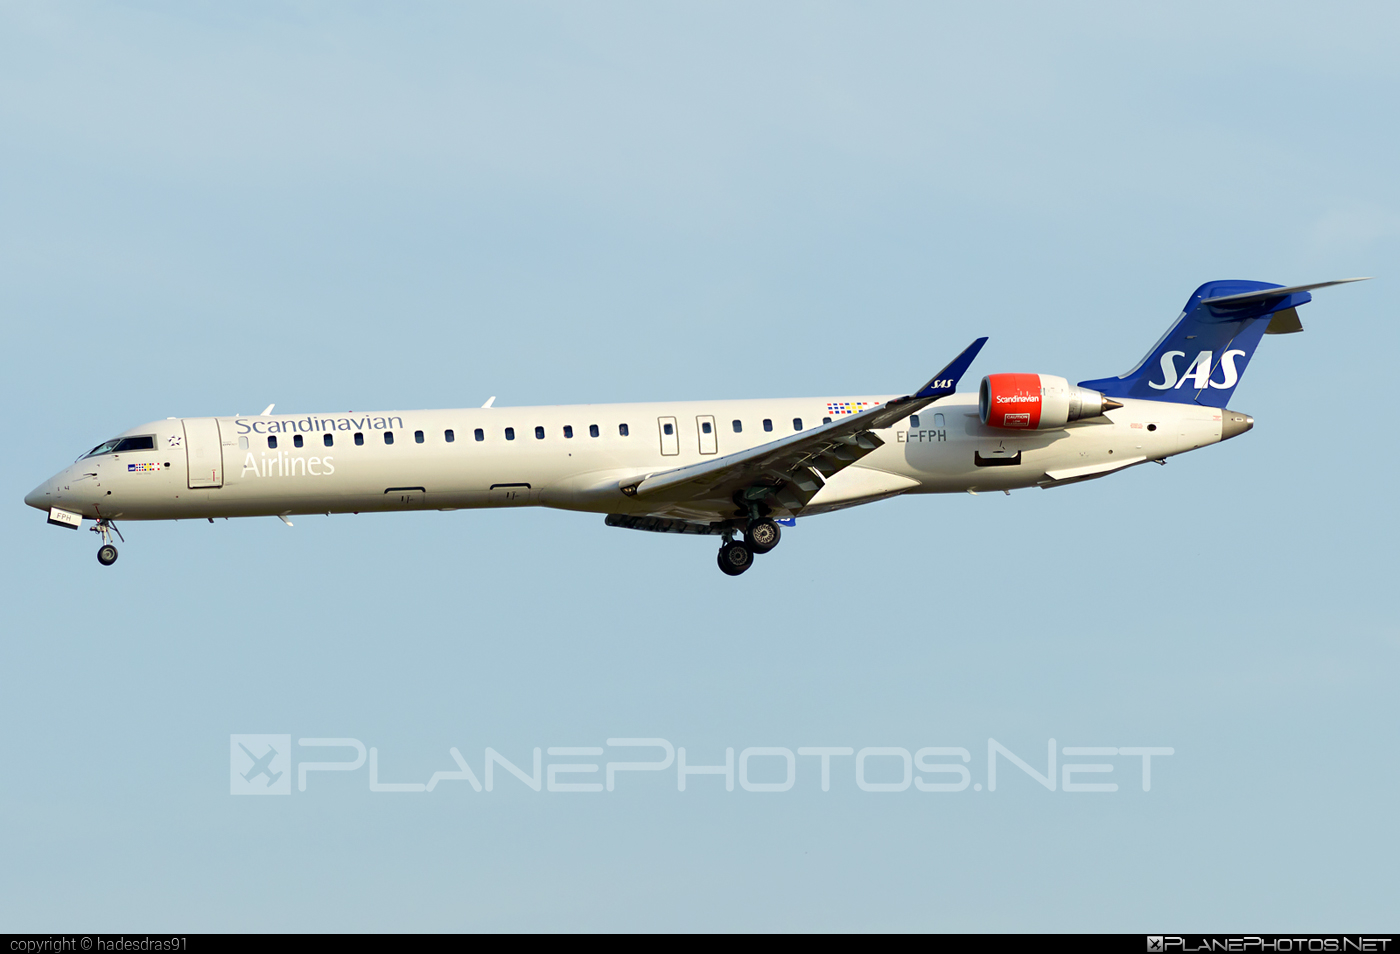 Bombardier CRJ900LR - EI-FPH operated by Scandinavian Airlines (SAS) #bombardier #crj900 #crj900lr #sas #sasairlines #scandinavianairlines